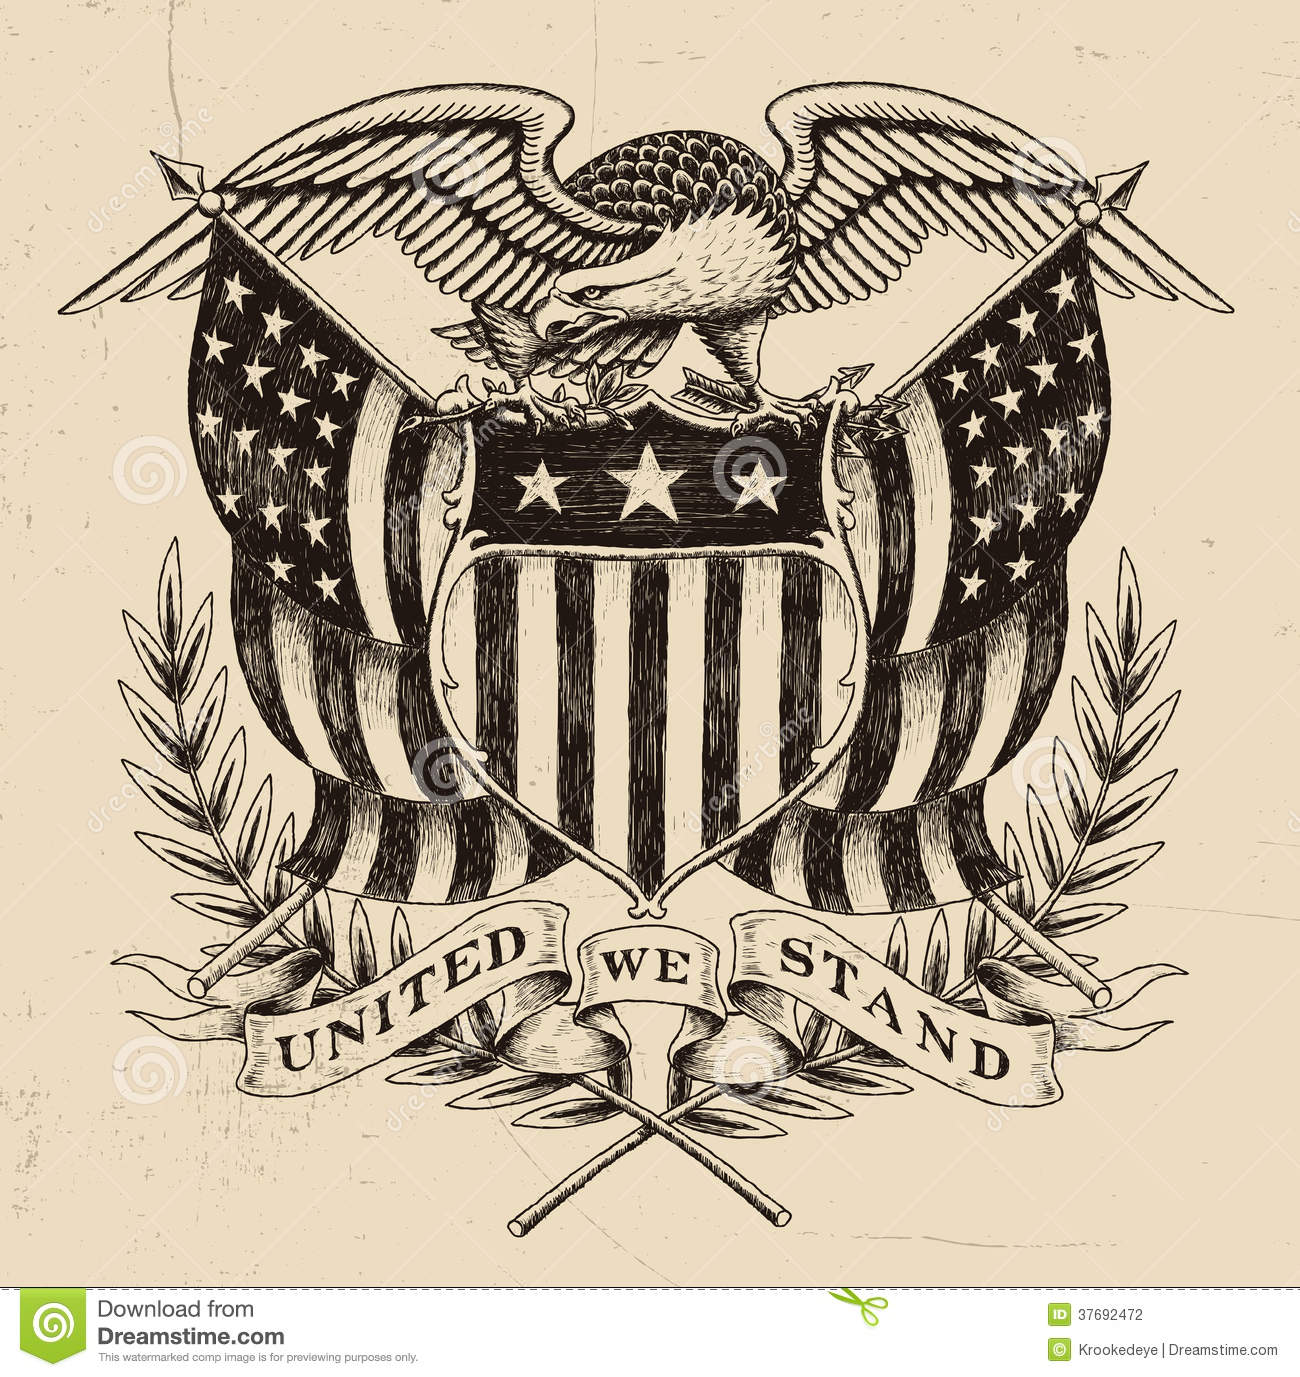 hand drawn american eagle linework stock vector - illustration of forces,  freedom: 37692472  dreamstime.com